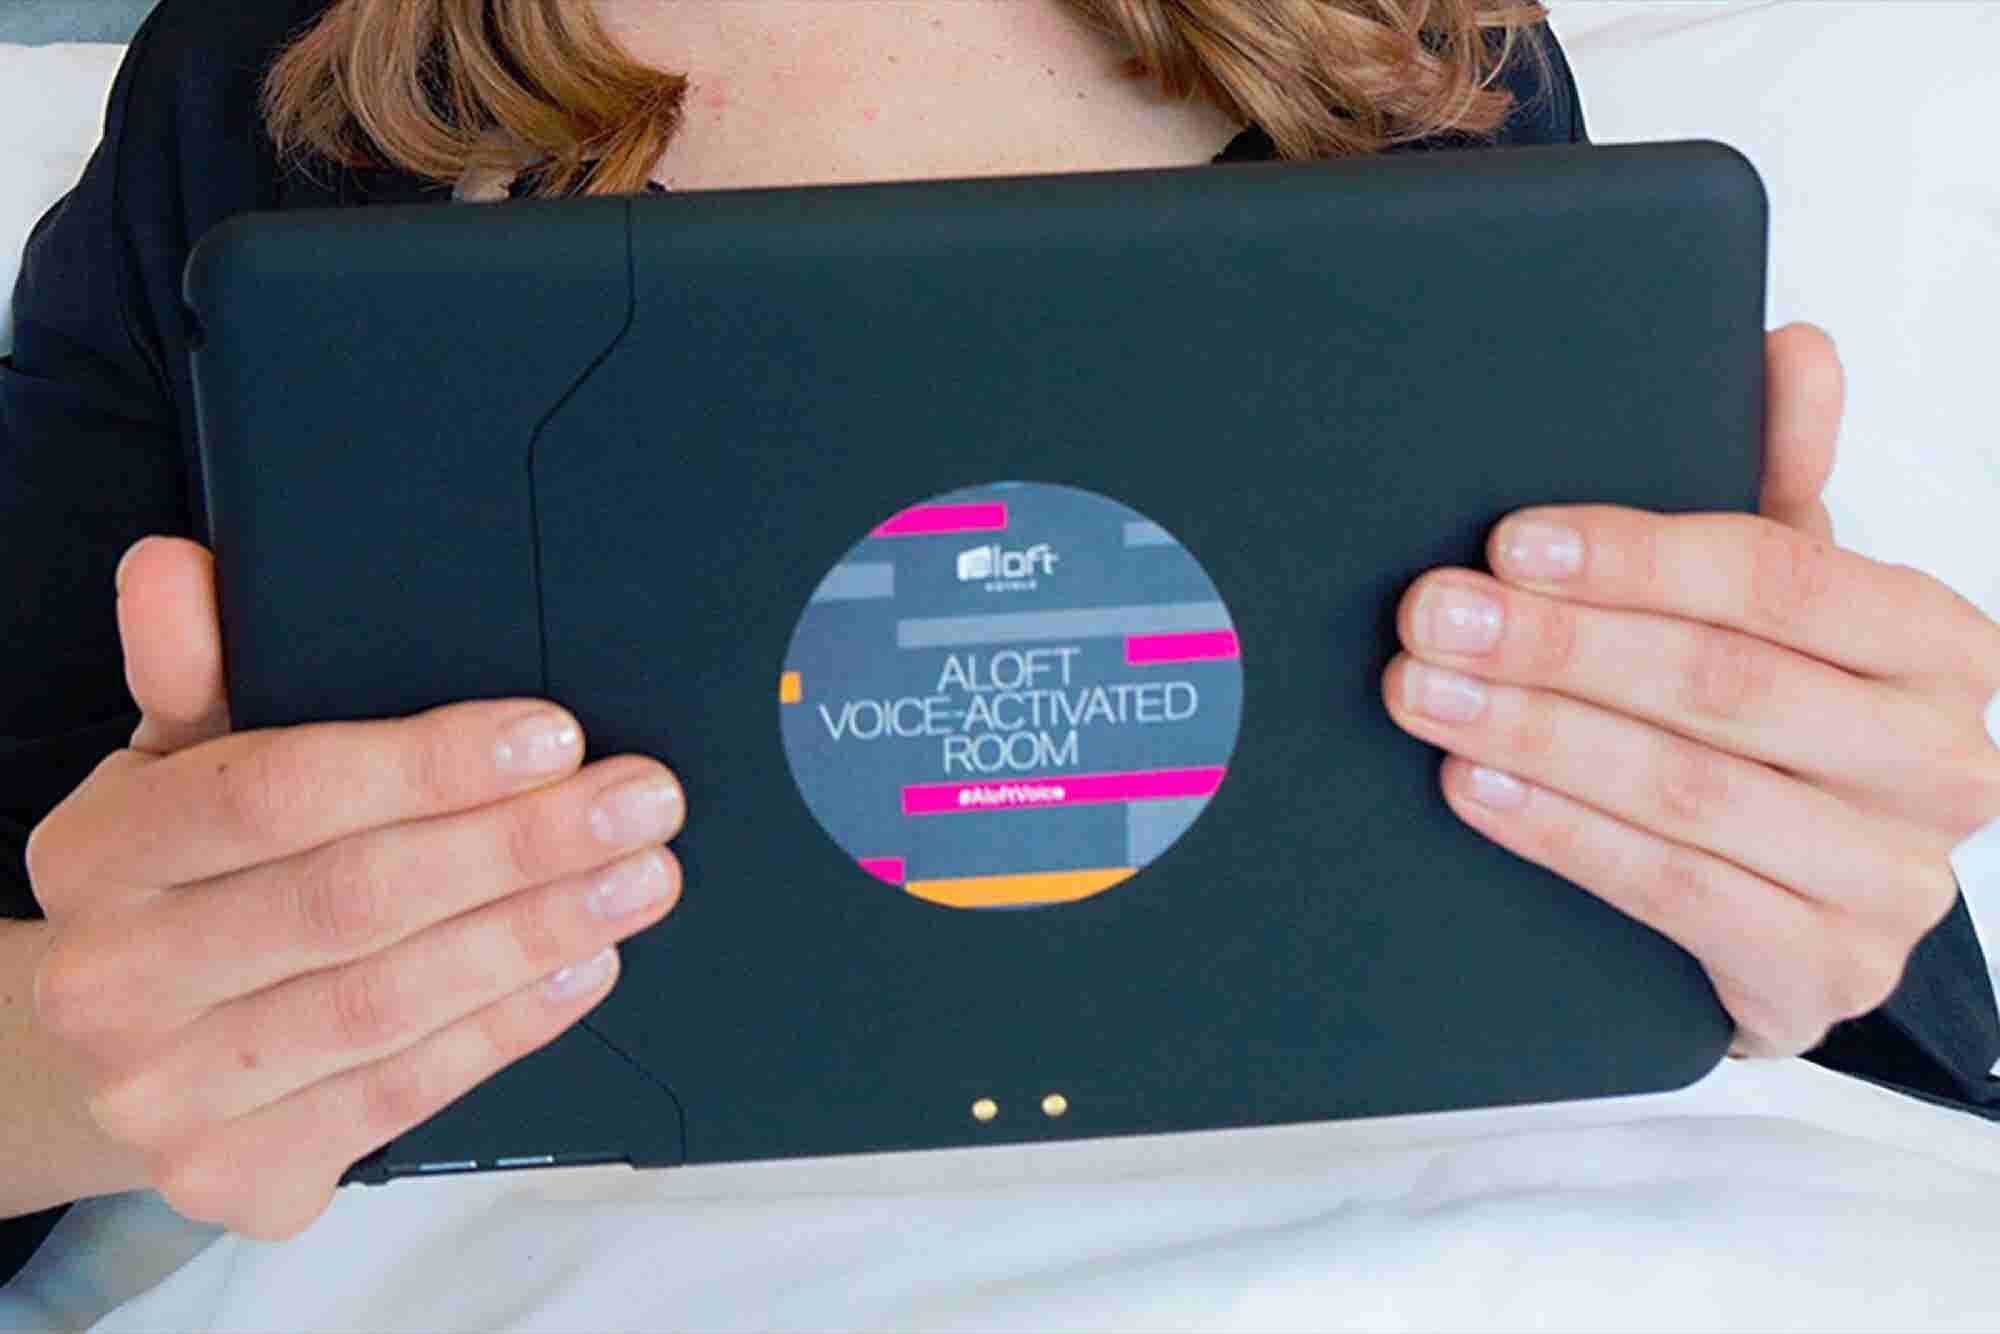 Aloft Hotel Adds Siri-Equipped Rooms